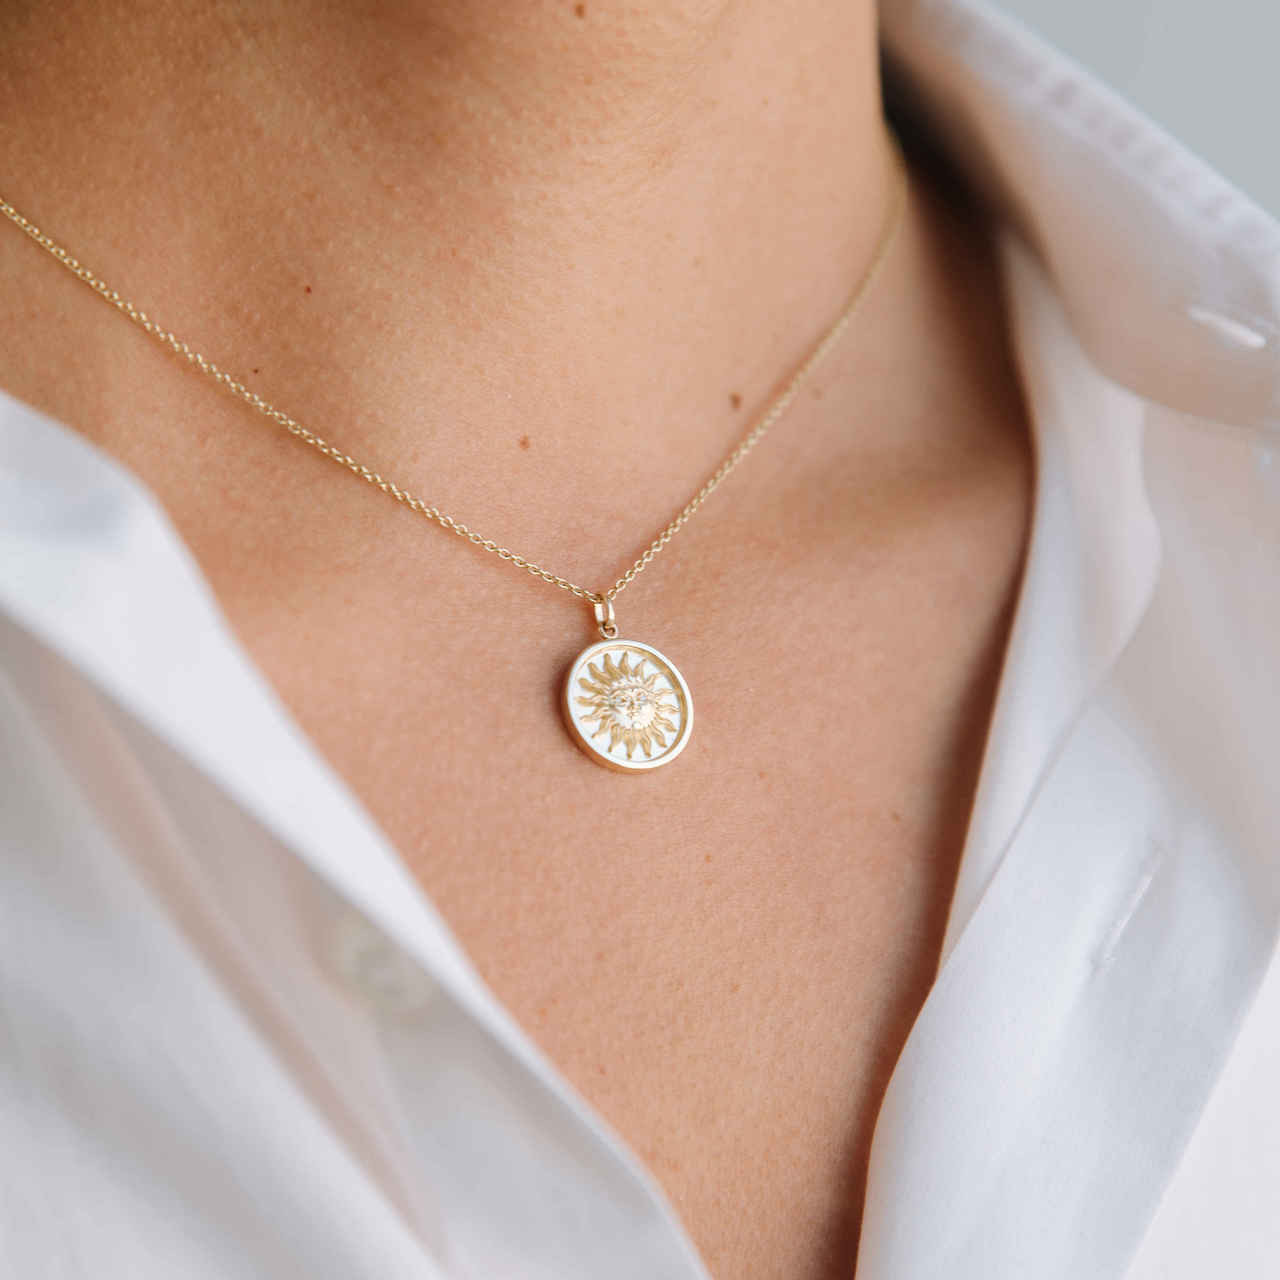 14k gold diamond sun medallion necklace